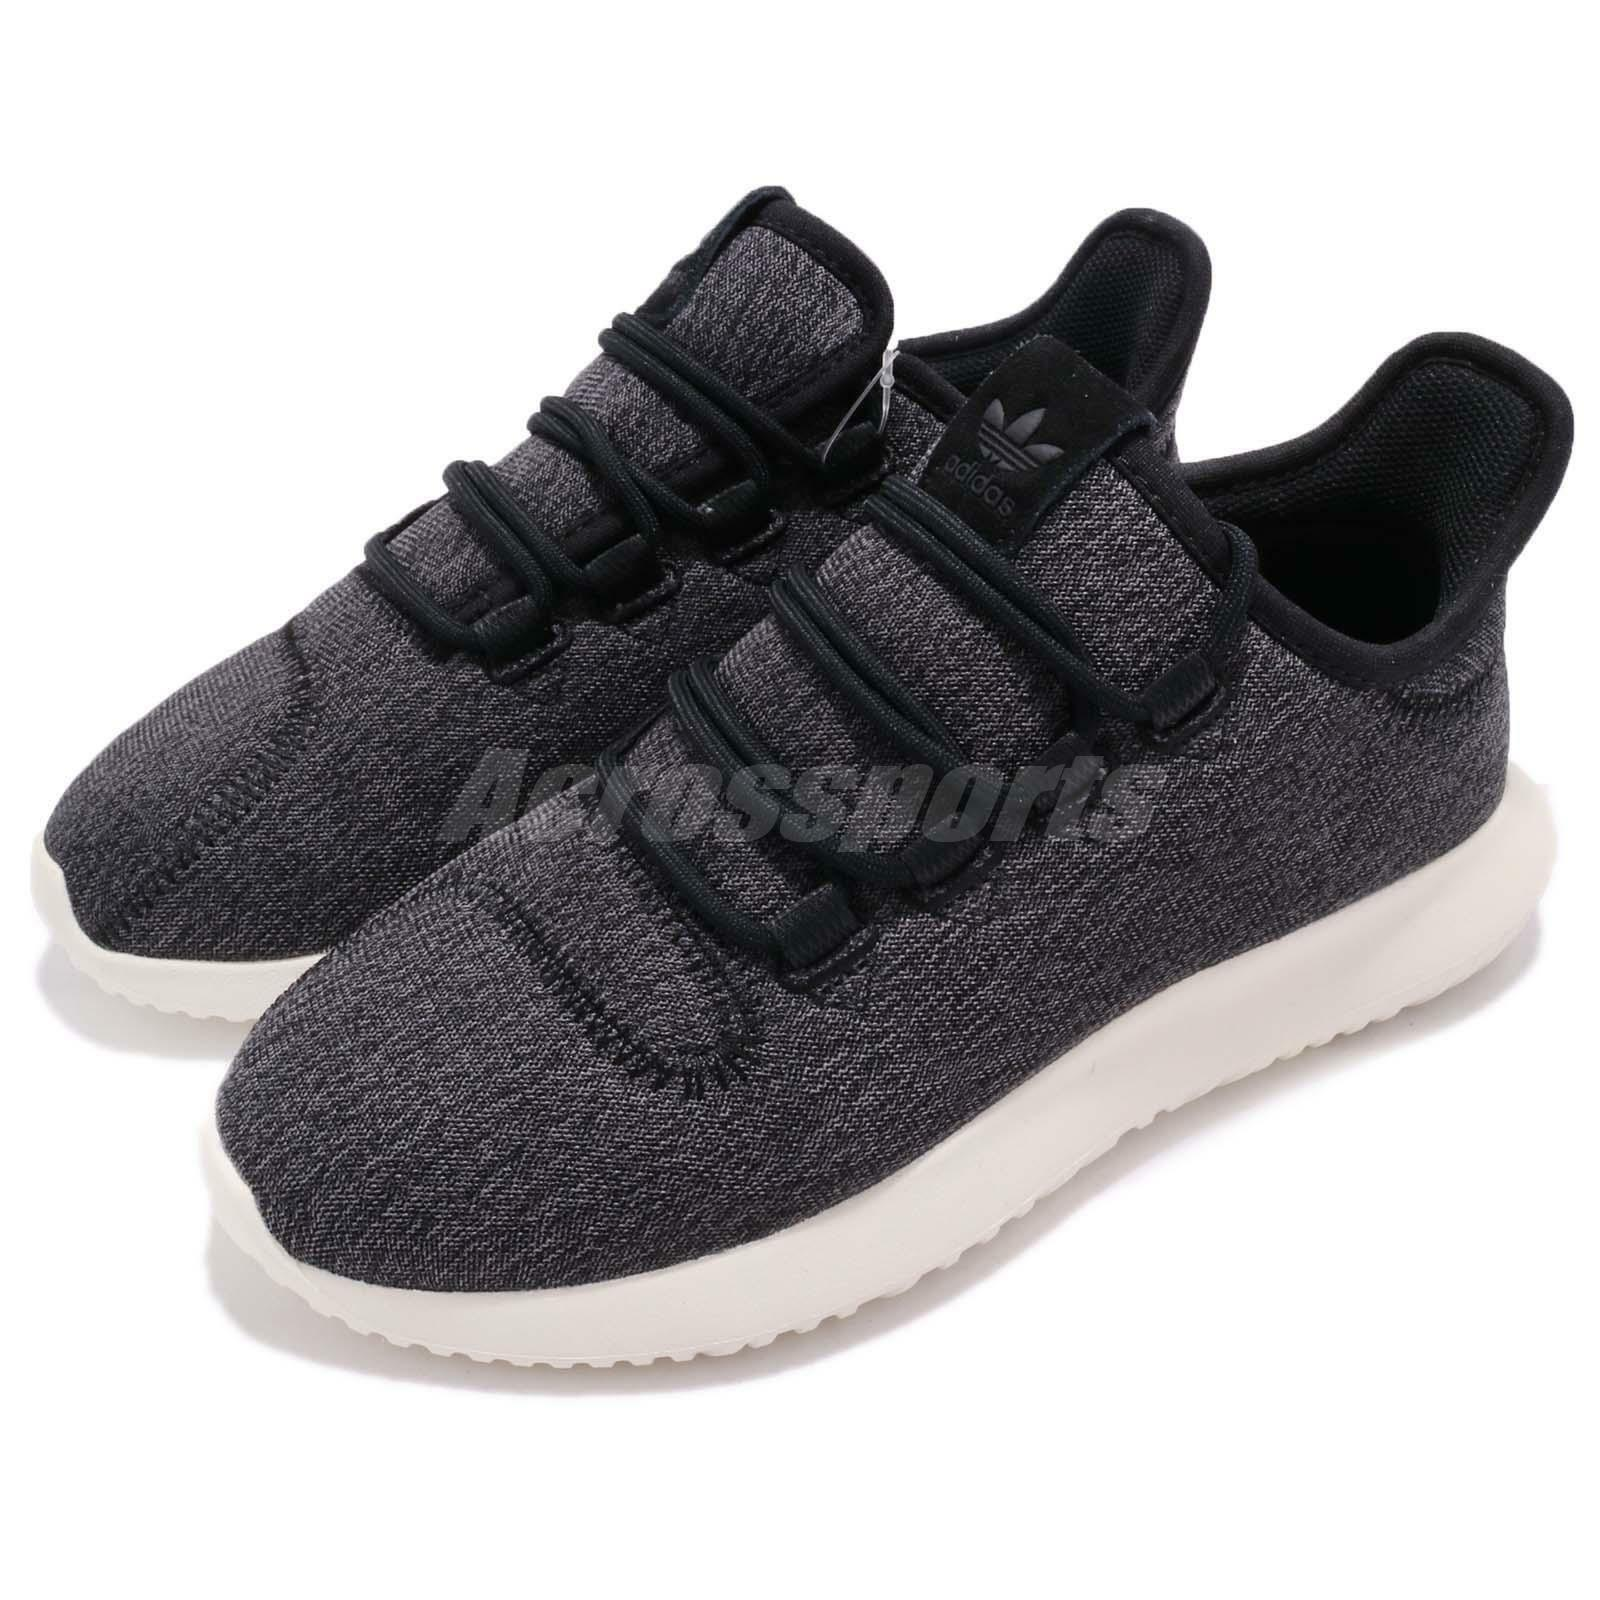 adidas Originals PW PW Originals Tennis Hu W Pharrell Williams  Gris  Chalkfemmes Chaussures DB2553 a7a4b3